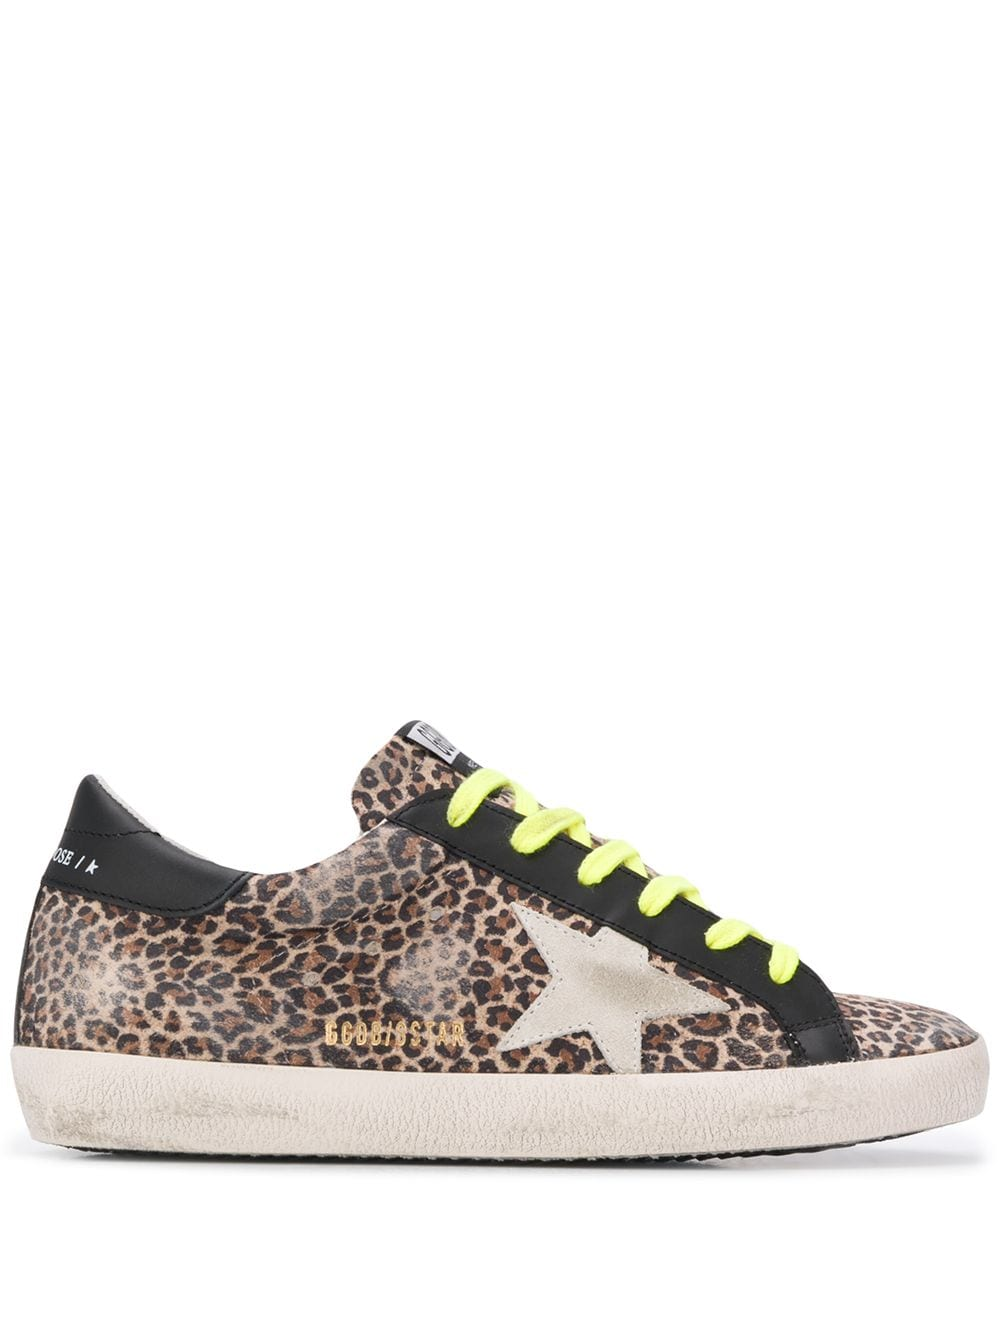 Superstar Leopard-Print Sneakers